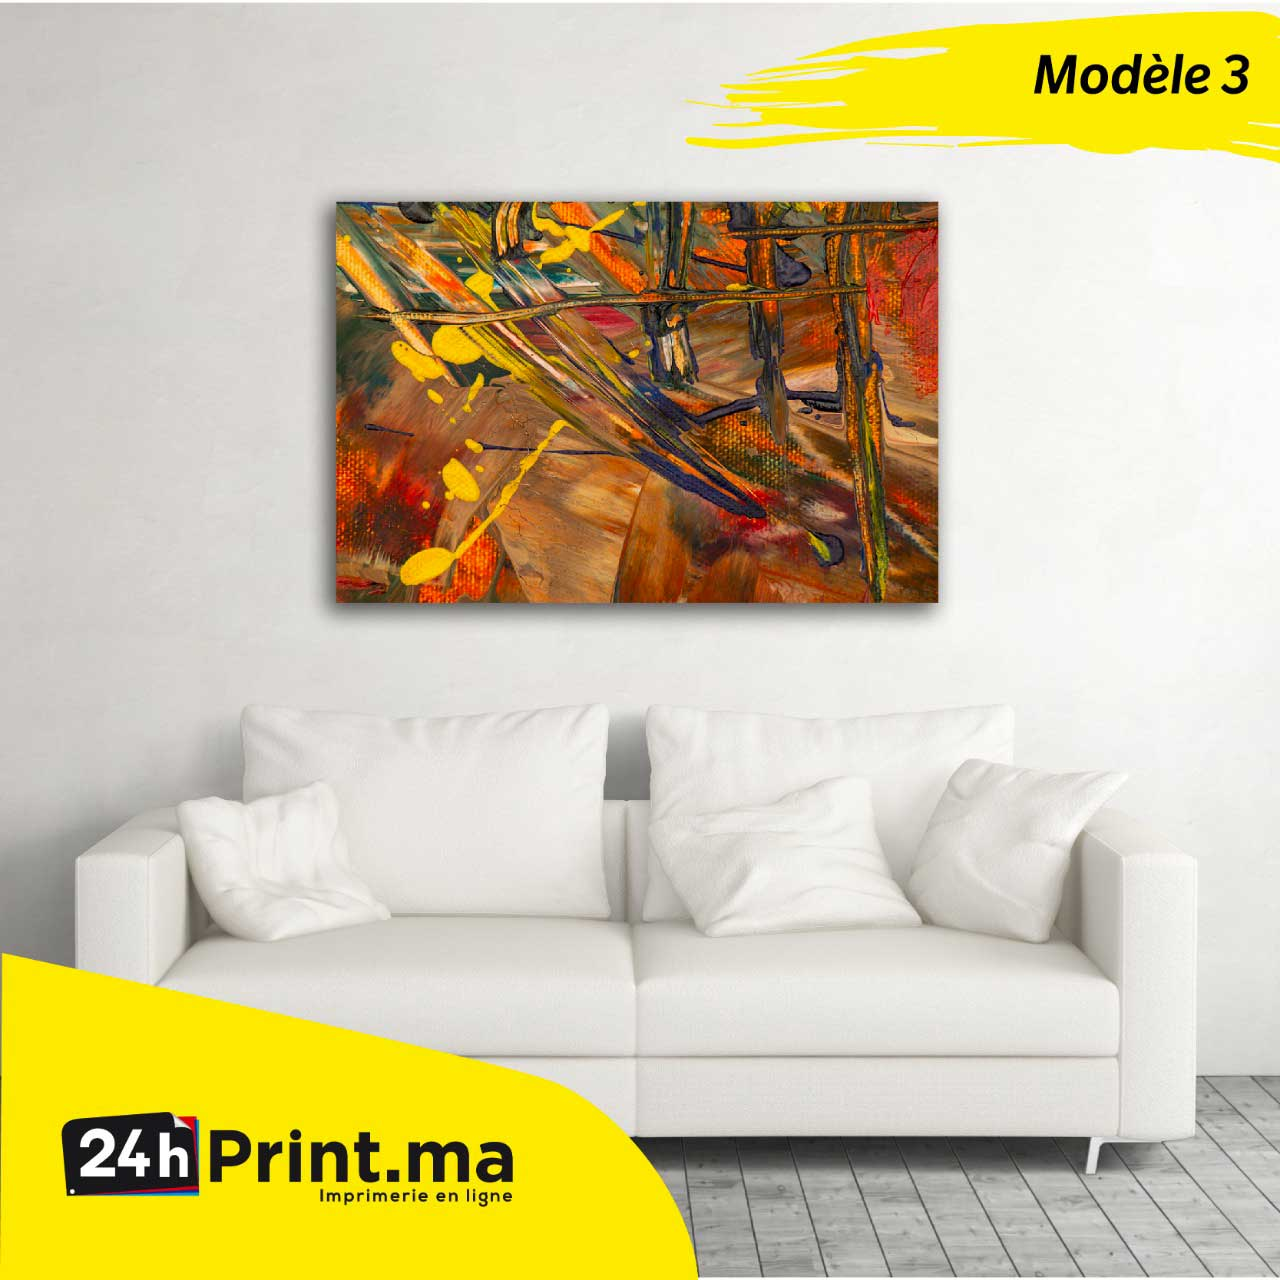 https://www.24hprint.ma/images/products_gallery_images/324.jpg